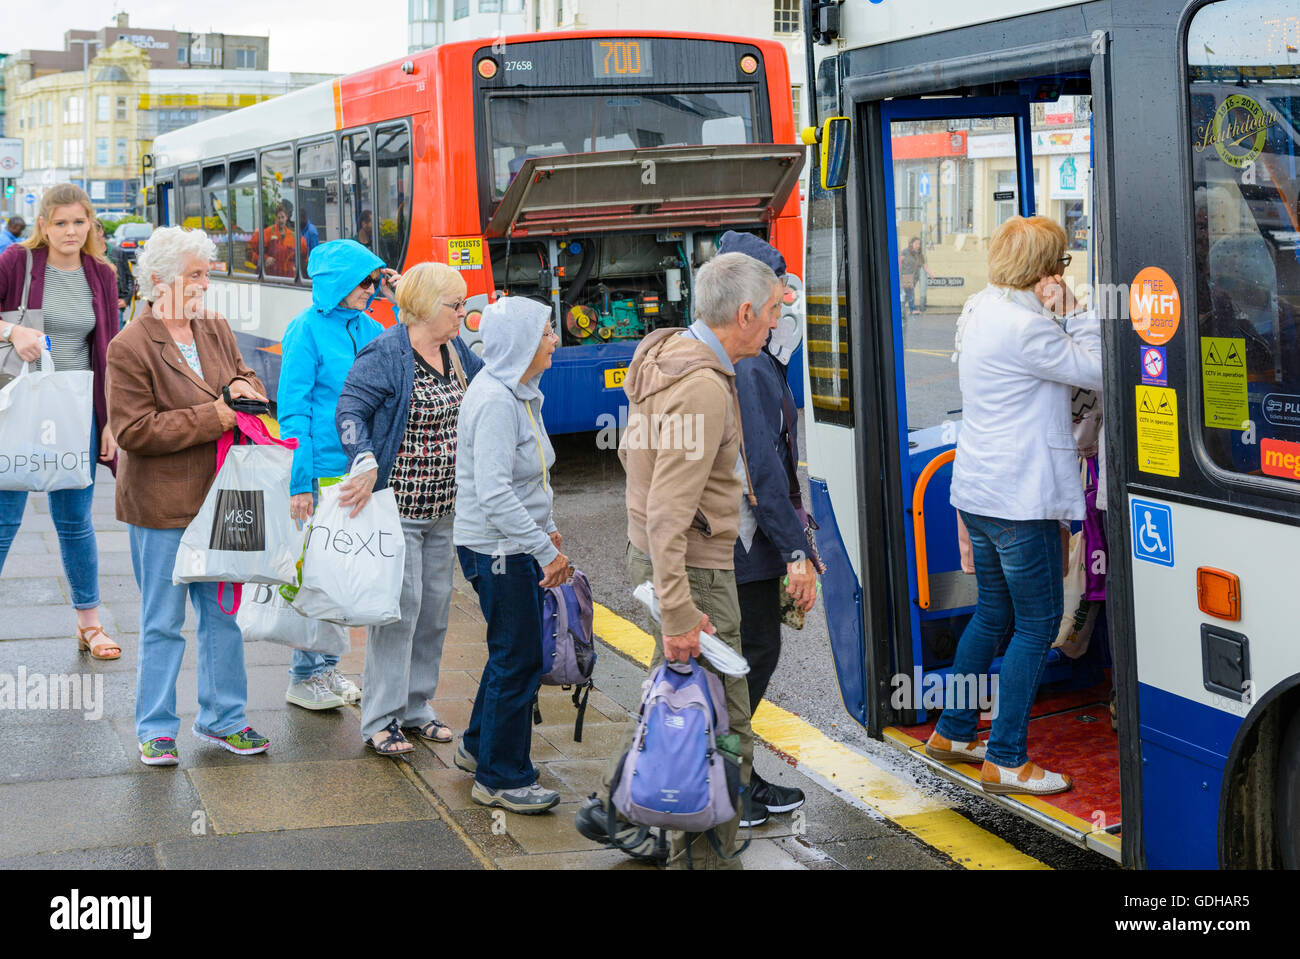 Queue of people boarding a Stagecoach bus in the UK. - Stock Image